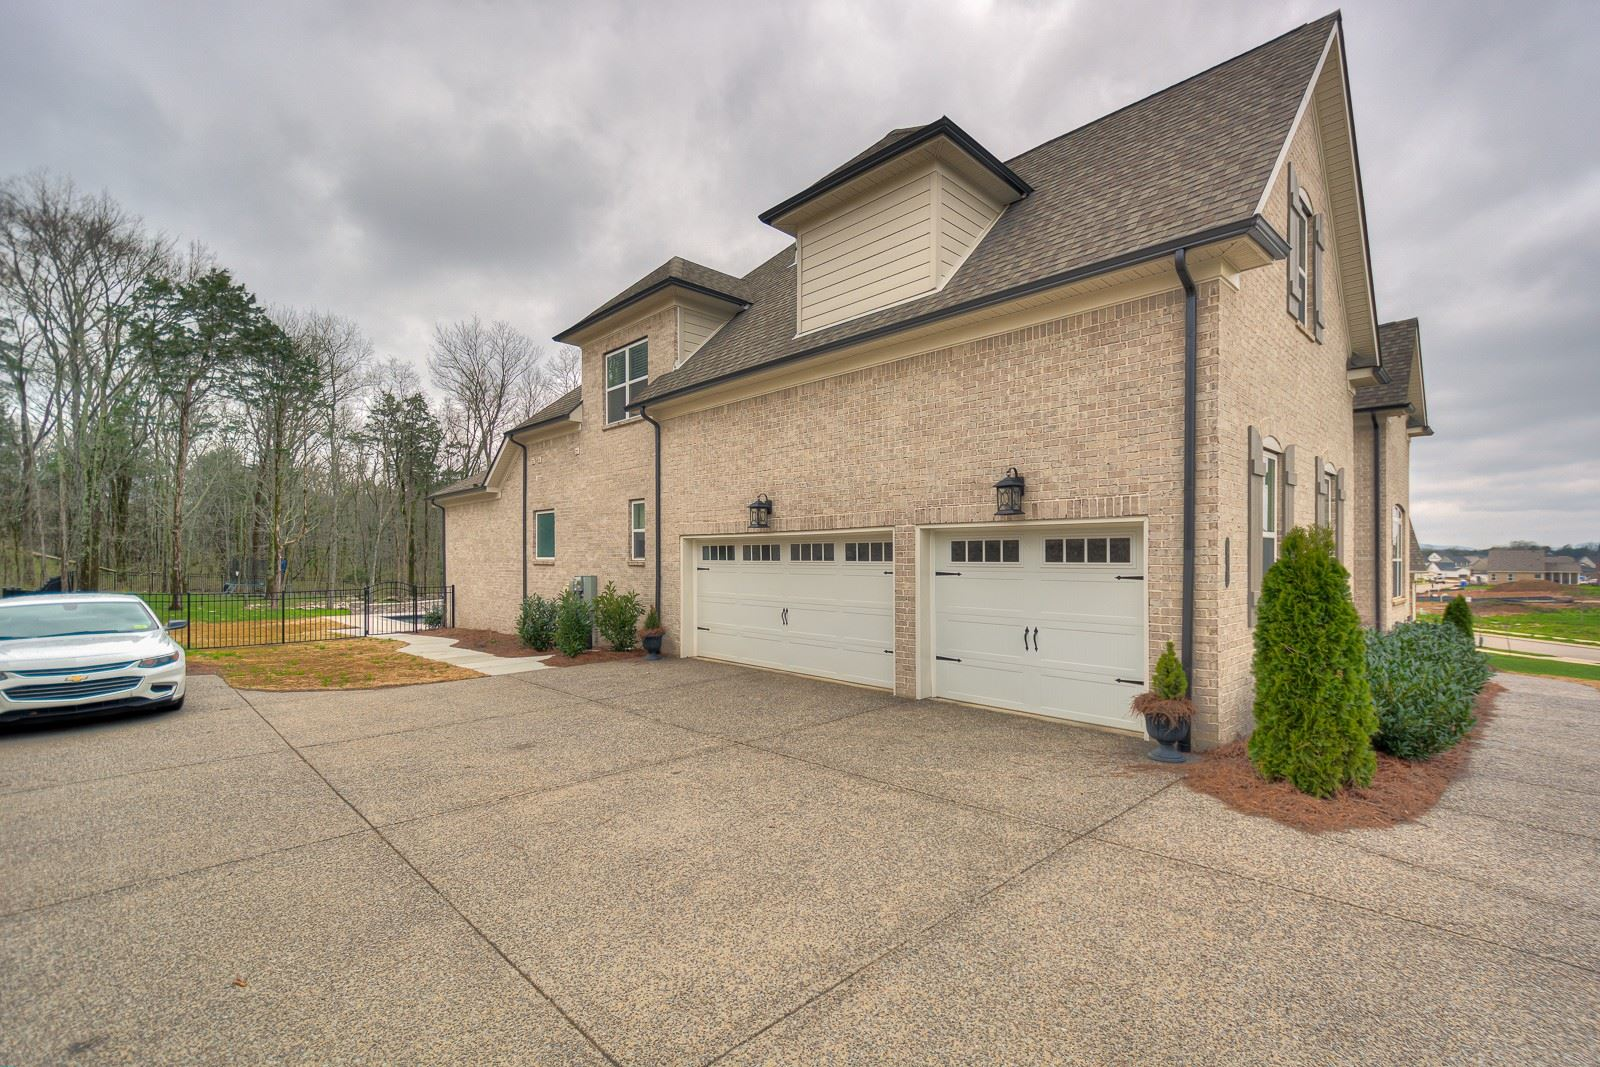 Photo of 283 Burberry Glen Blvd, Nolensville, TN 37135 (MLS # 2135527)